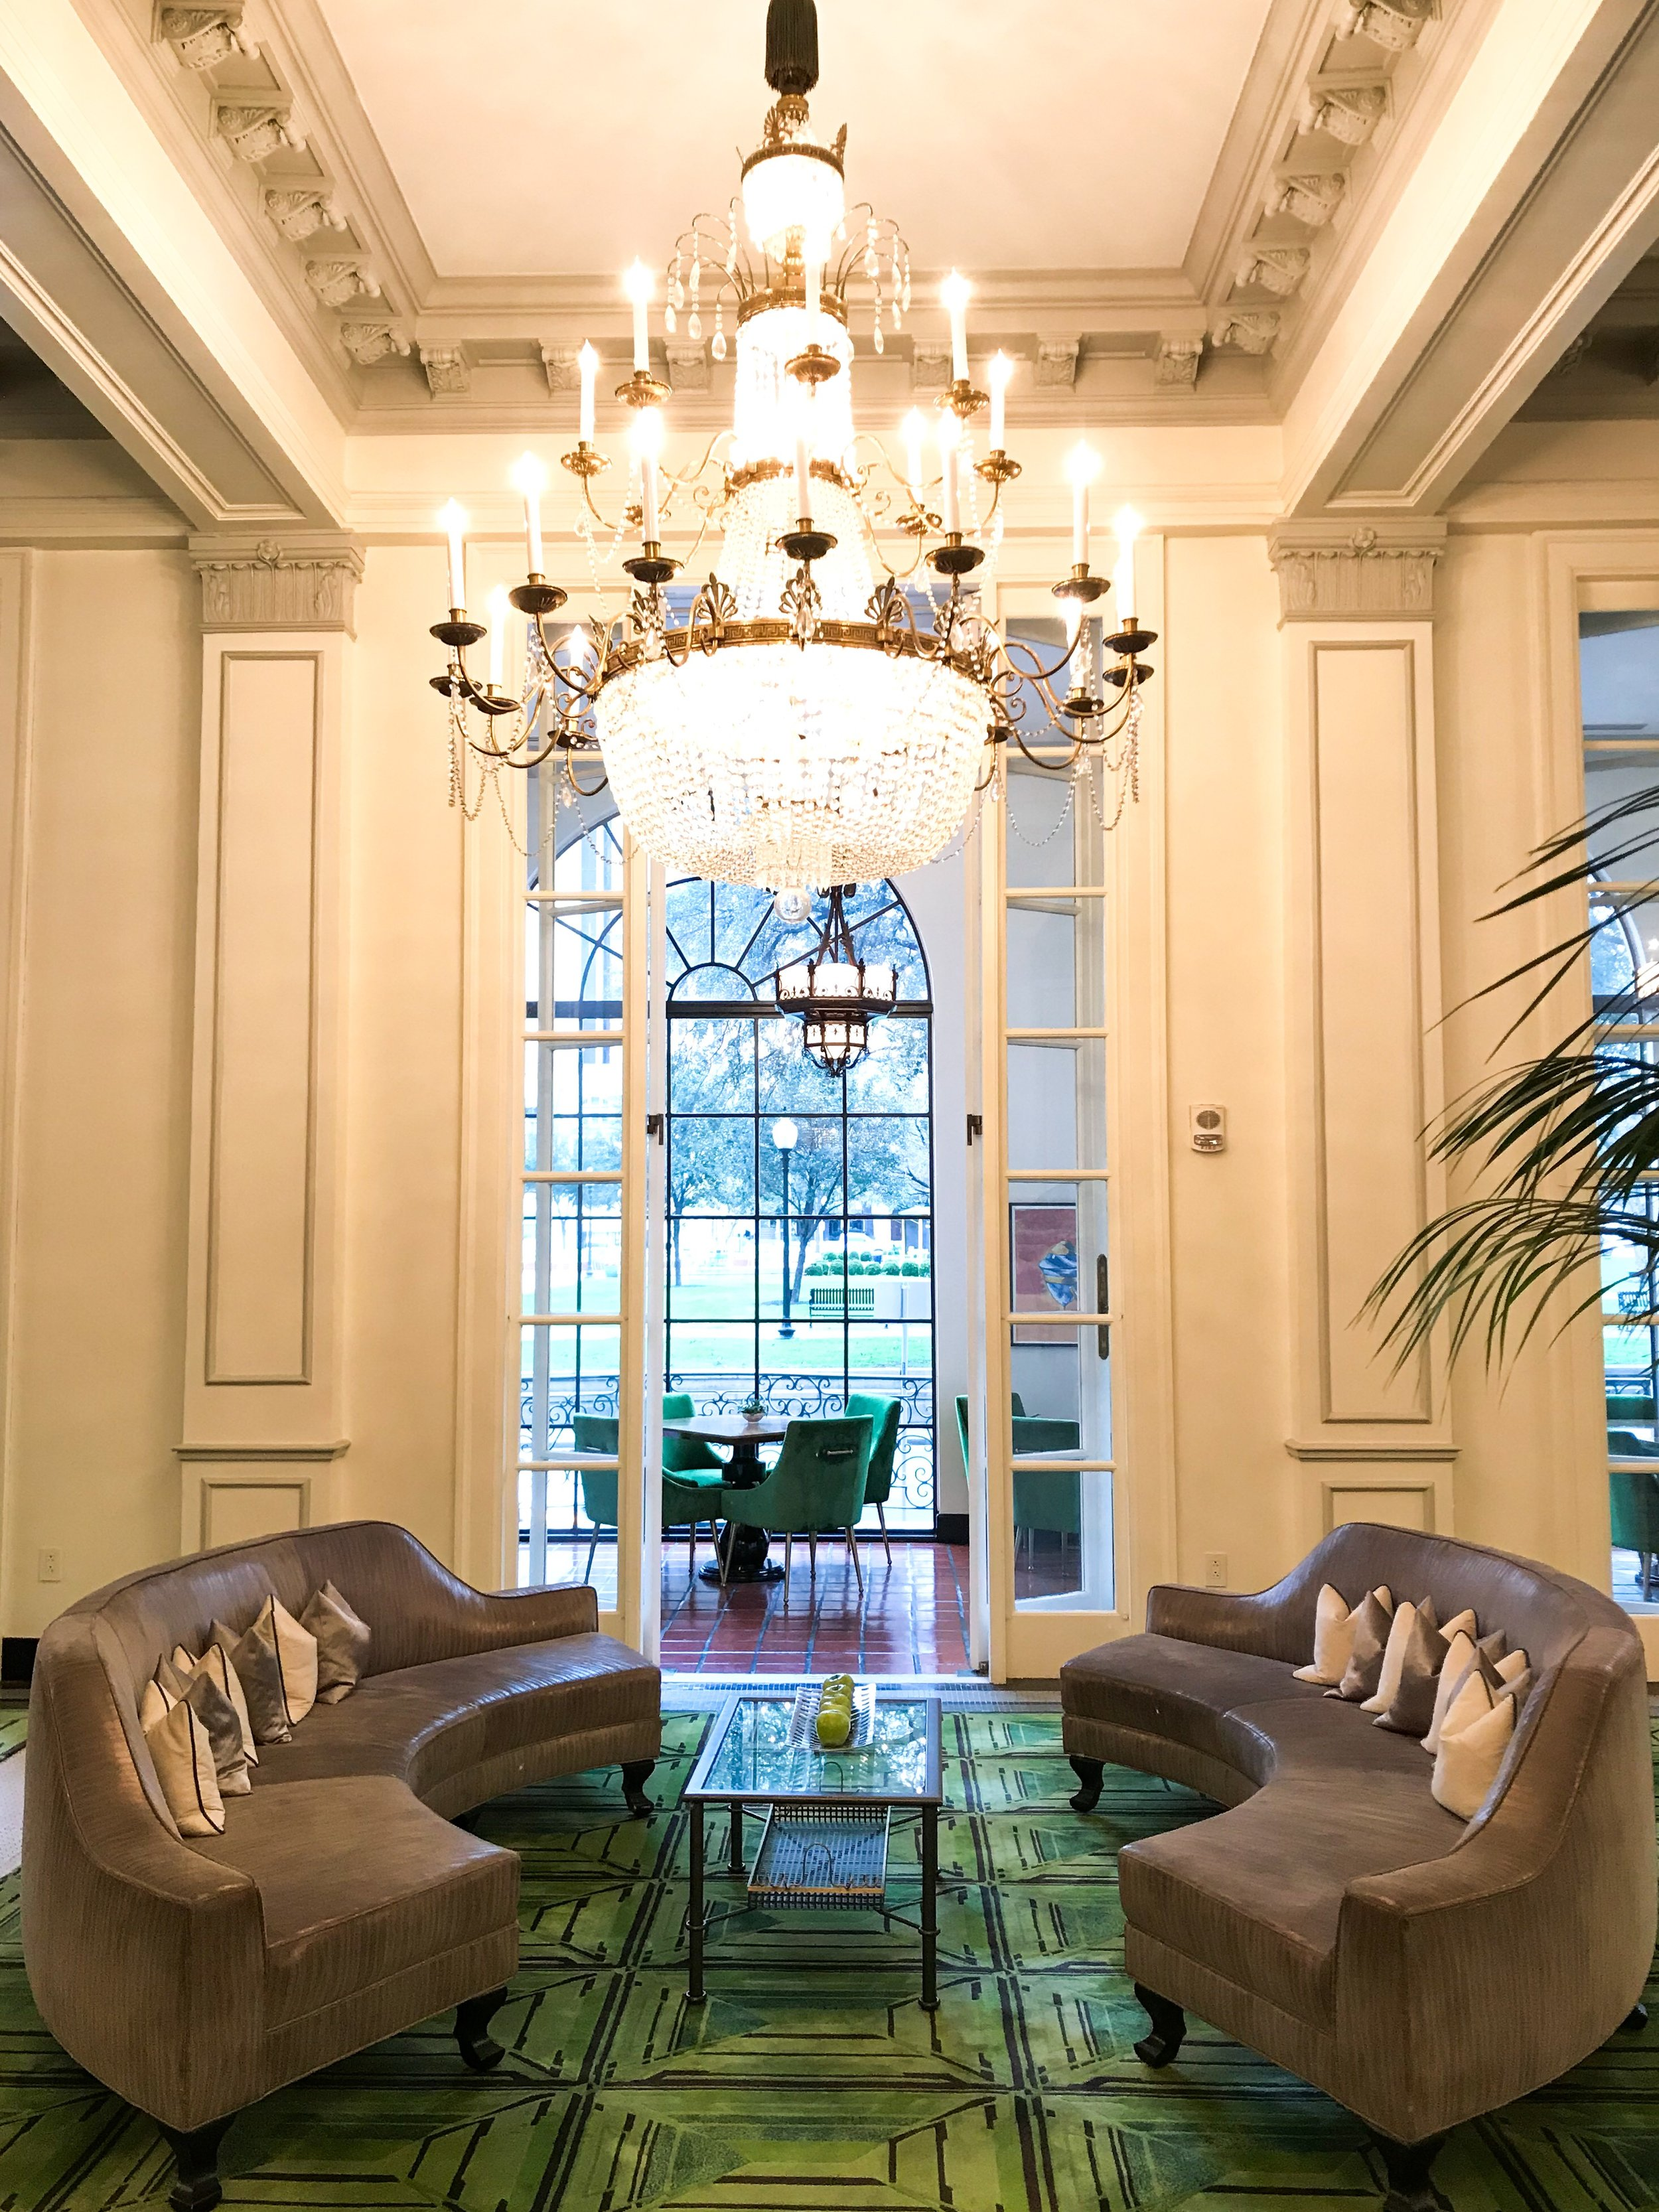 A sitting area in the lobby.